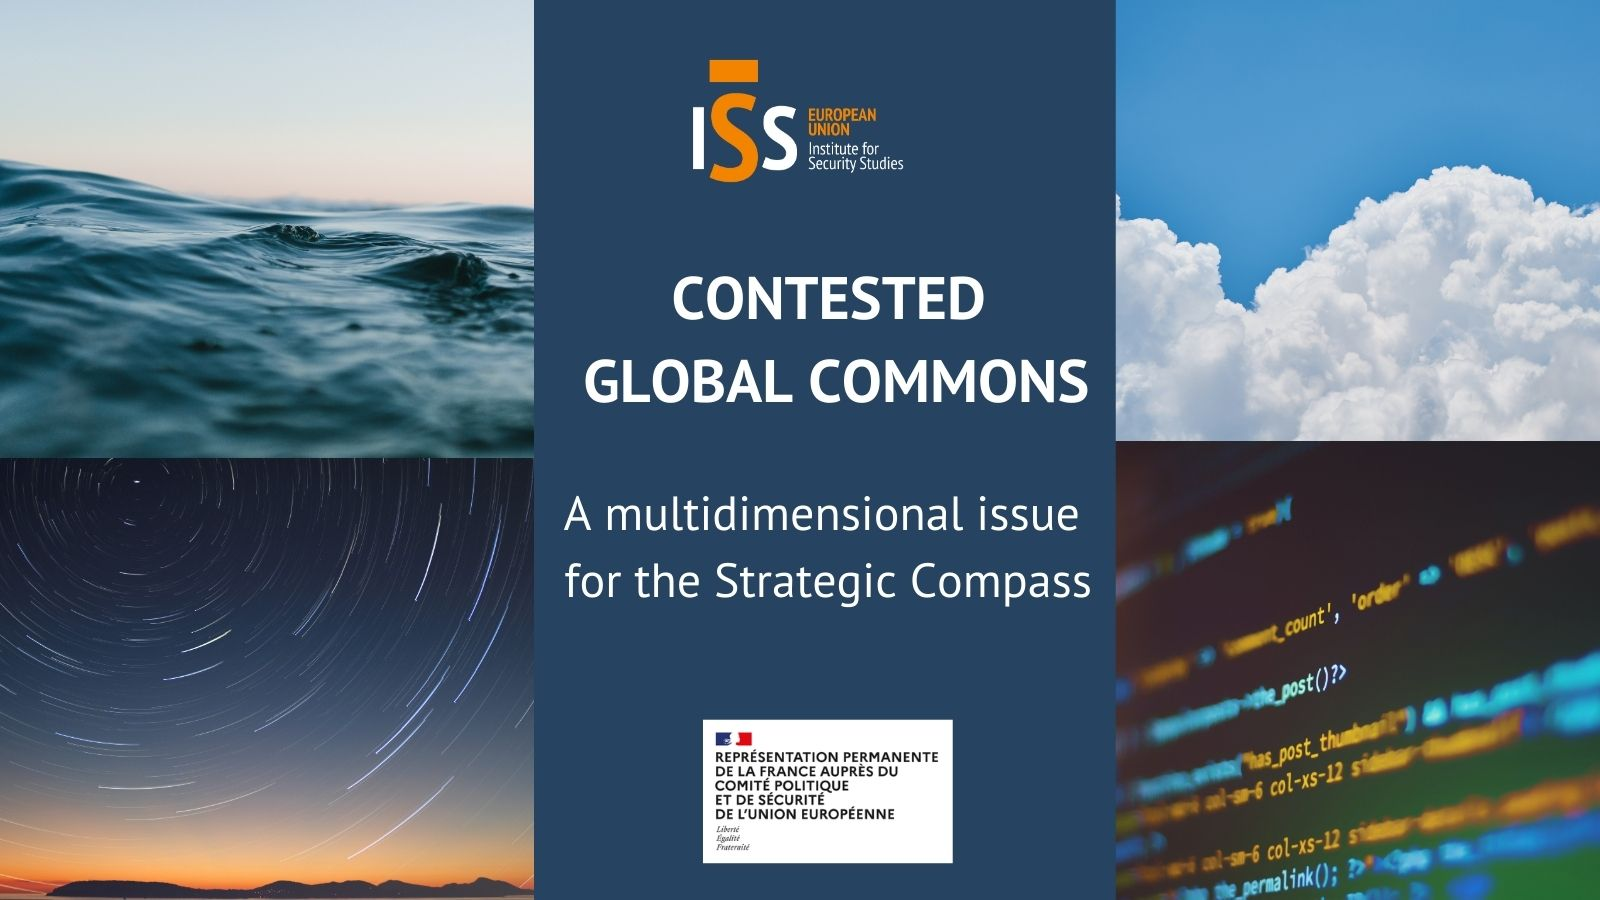 Contest global commons promotional image